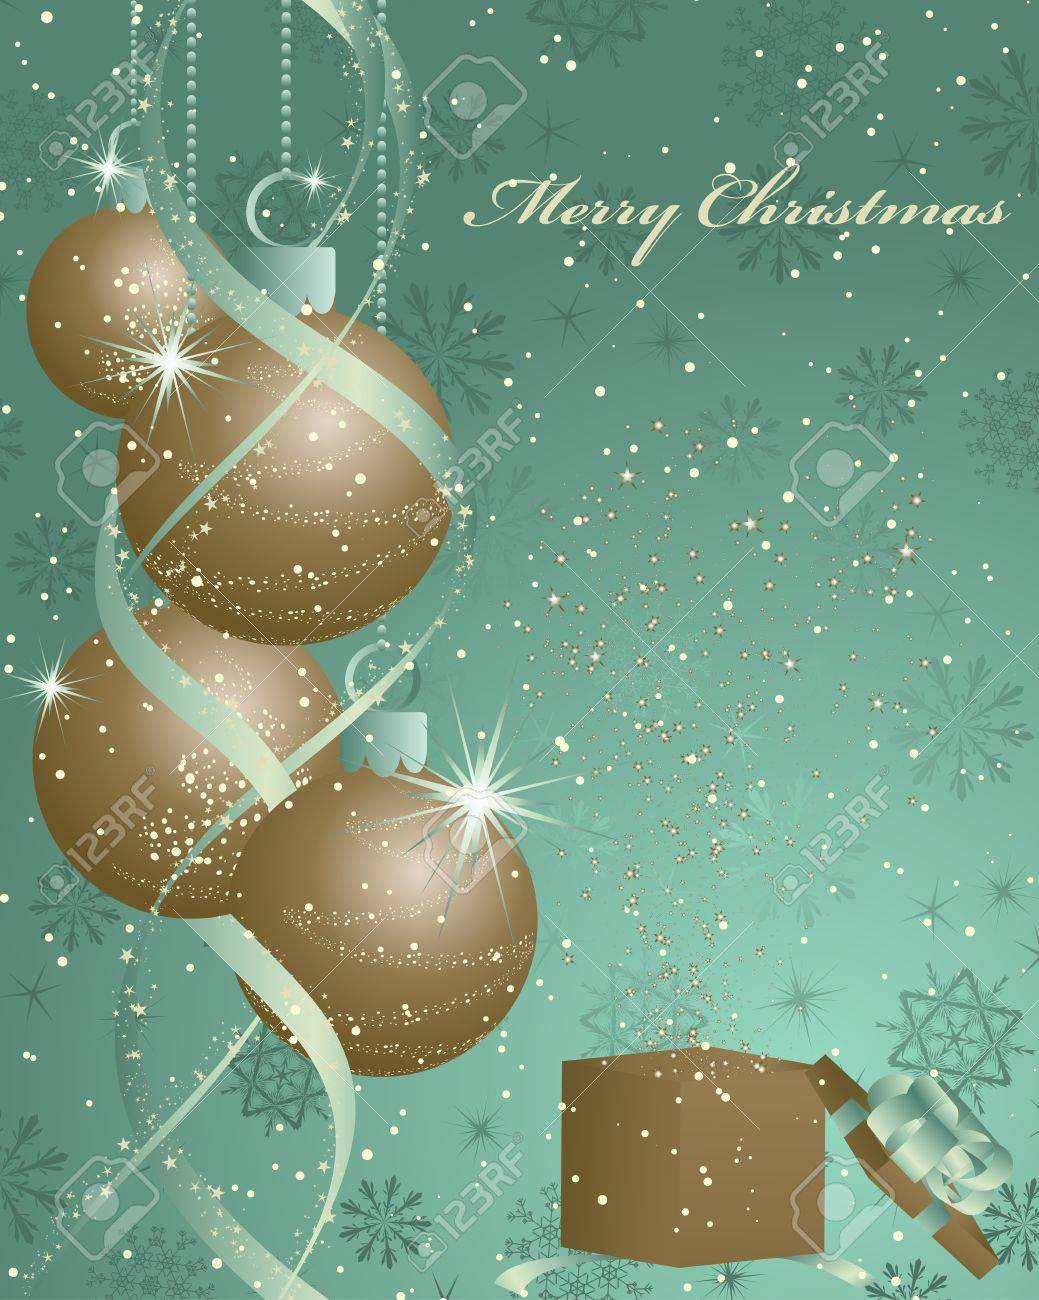 Vintage retro Christmas (New Year) card for design use Stock Vector - 10960236